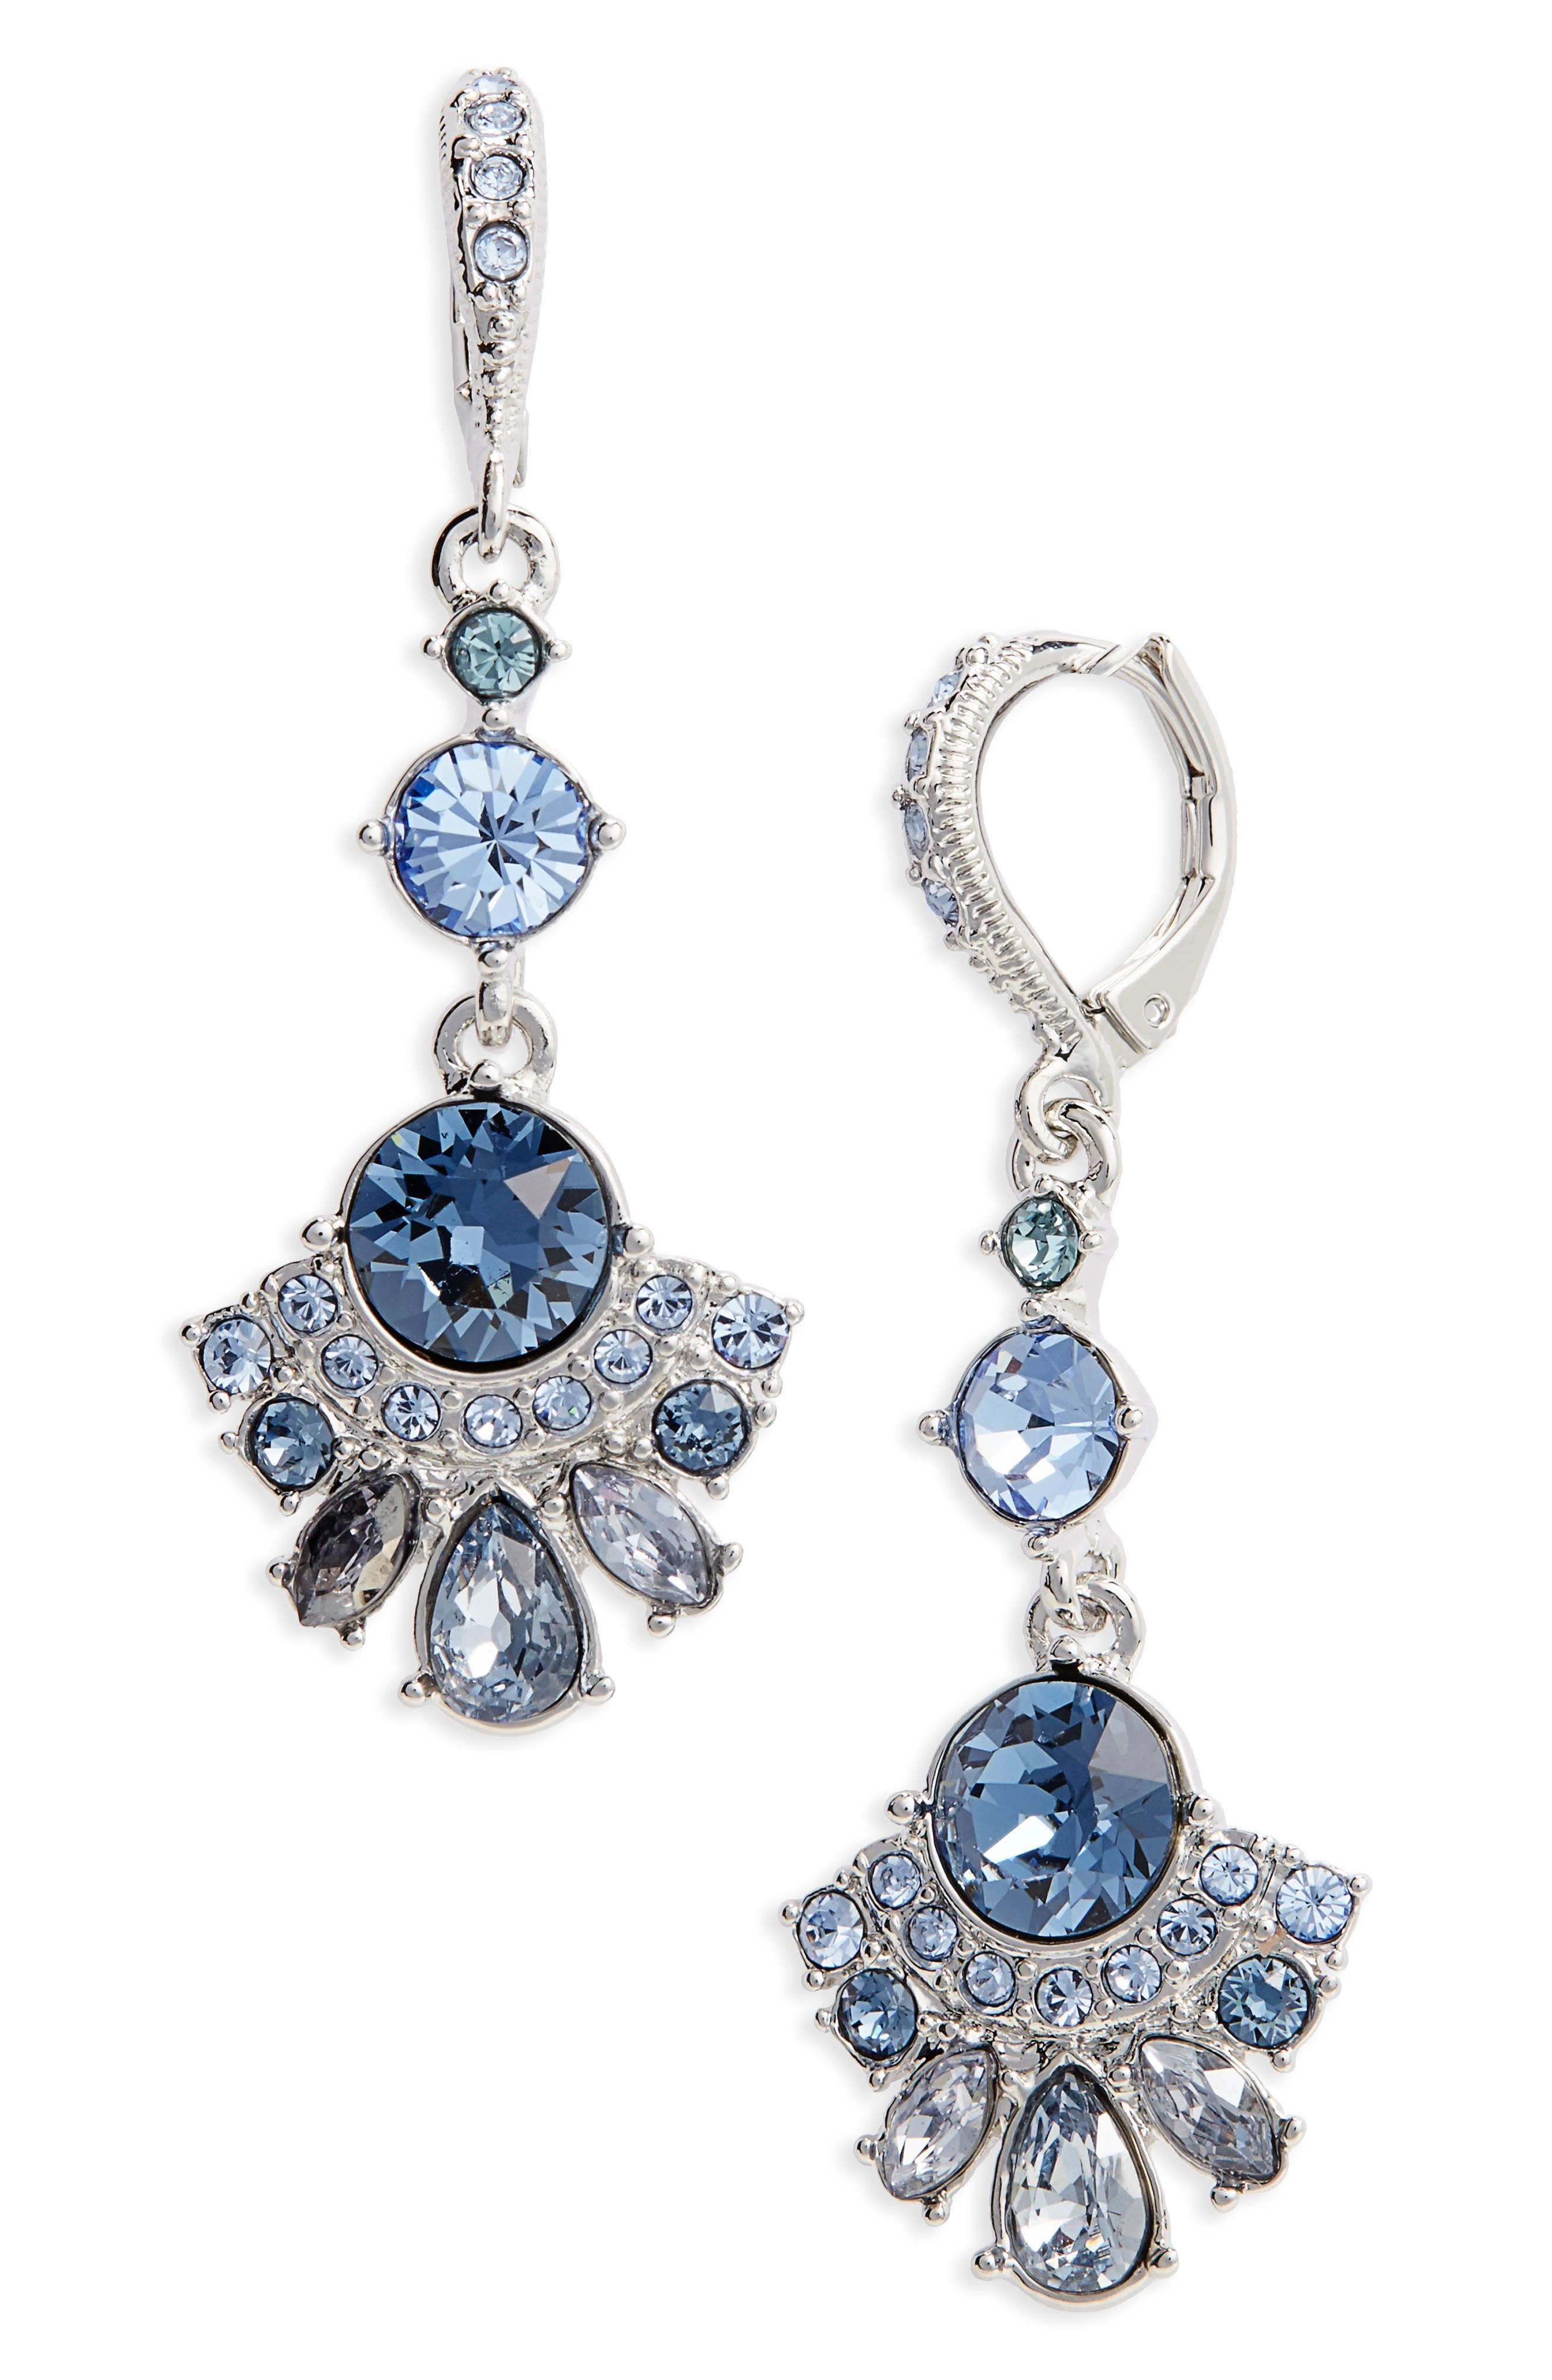 Givenchy Verona Drop Earrings